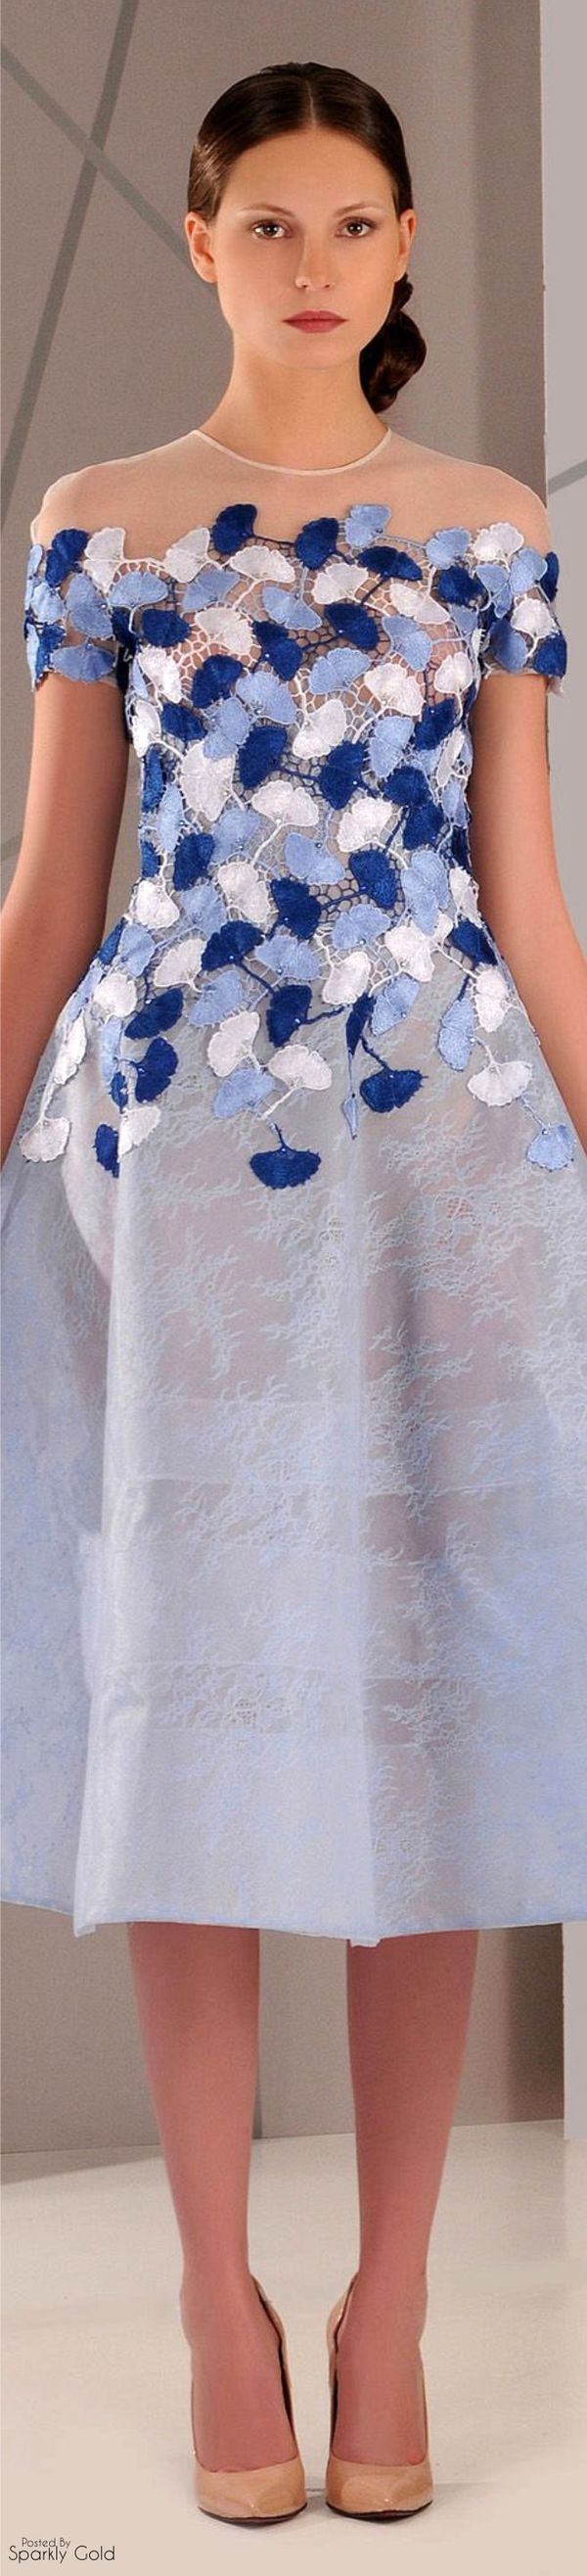 best dress up images on pinterest party outfits classy dress